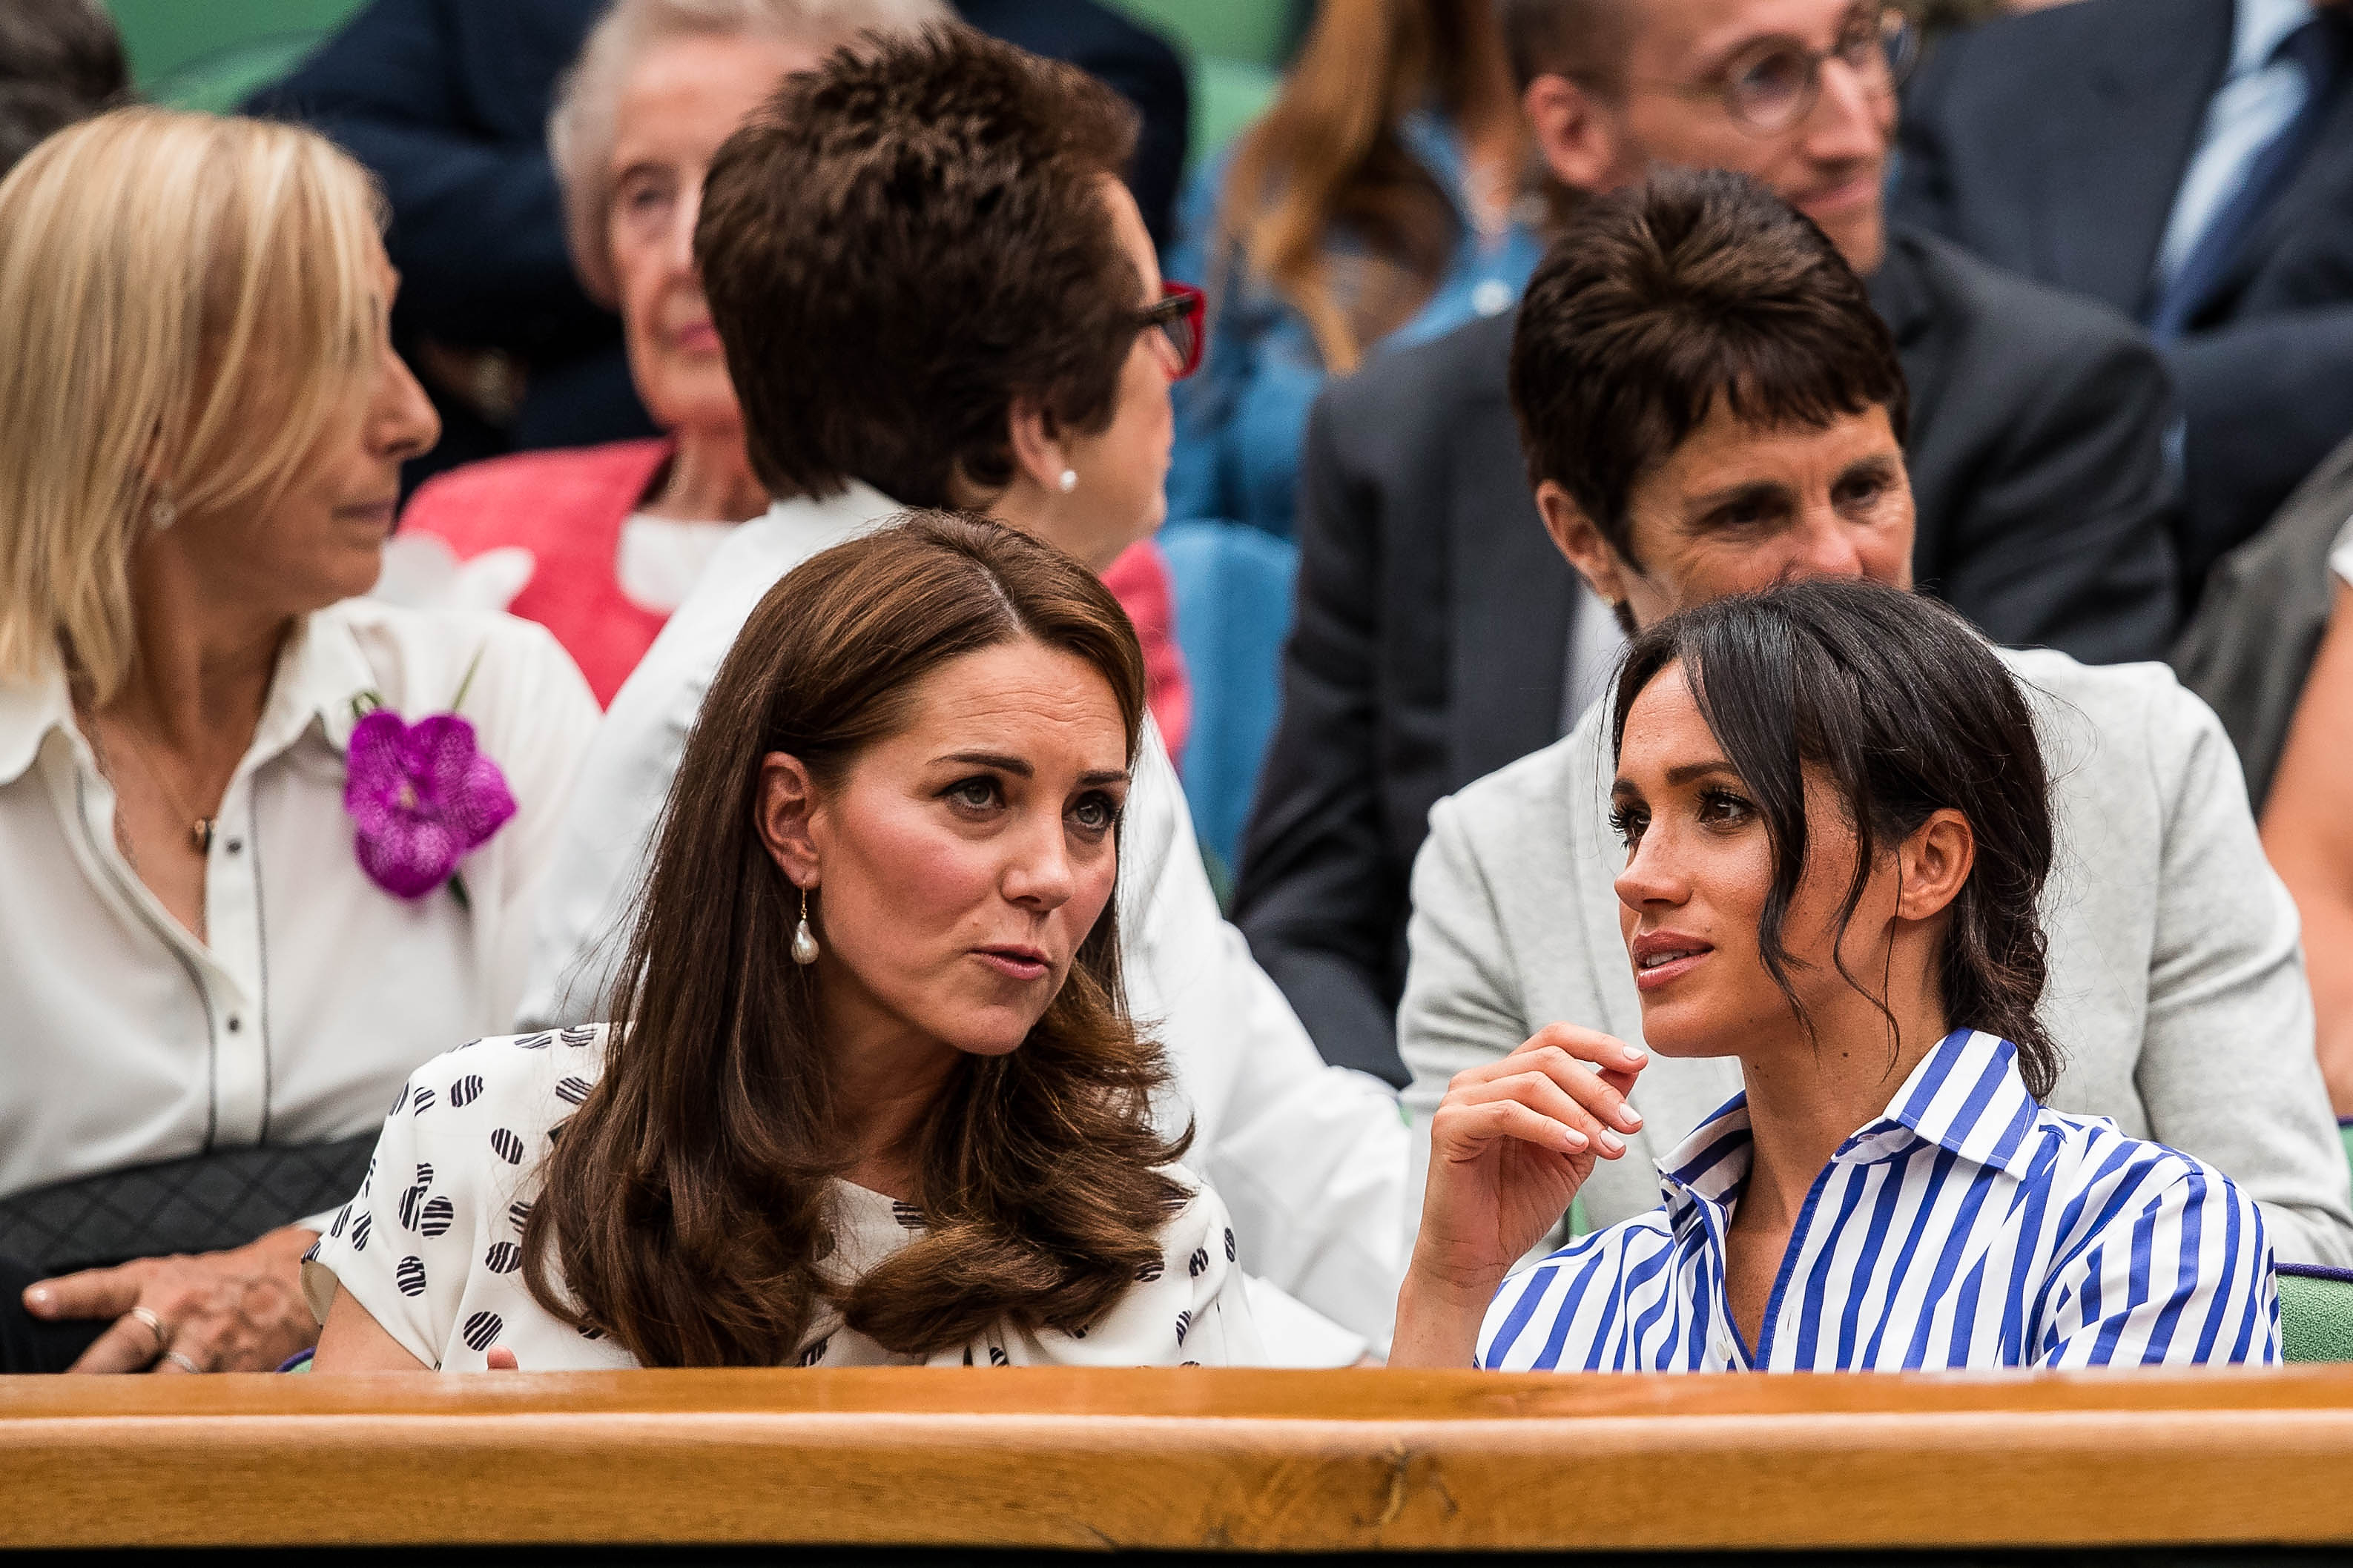 Meghan Markle and Kate Middleton to attend Wimbledon final together to see Serena Williams 3